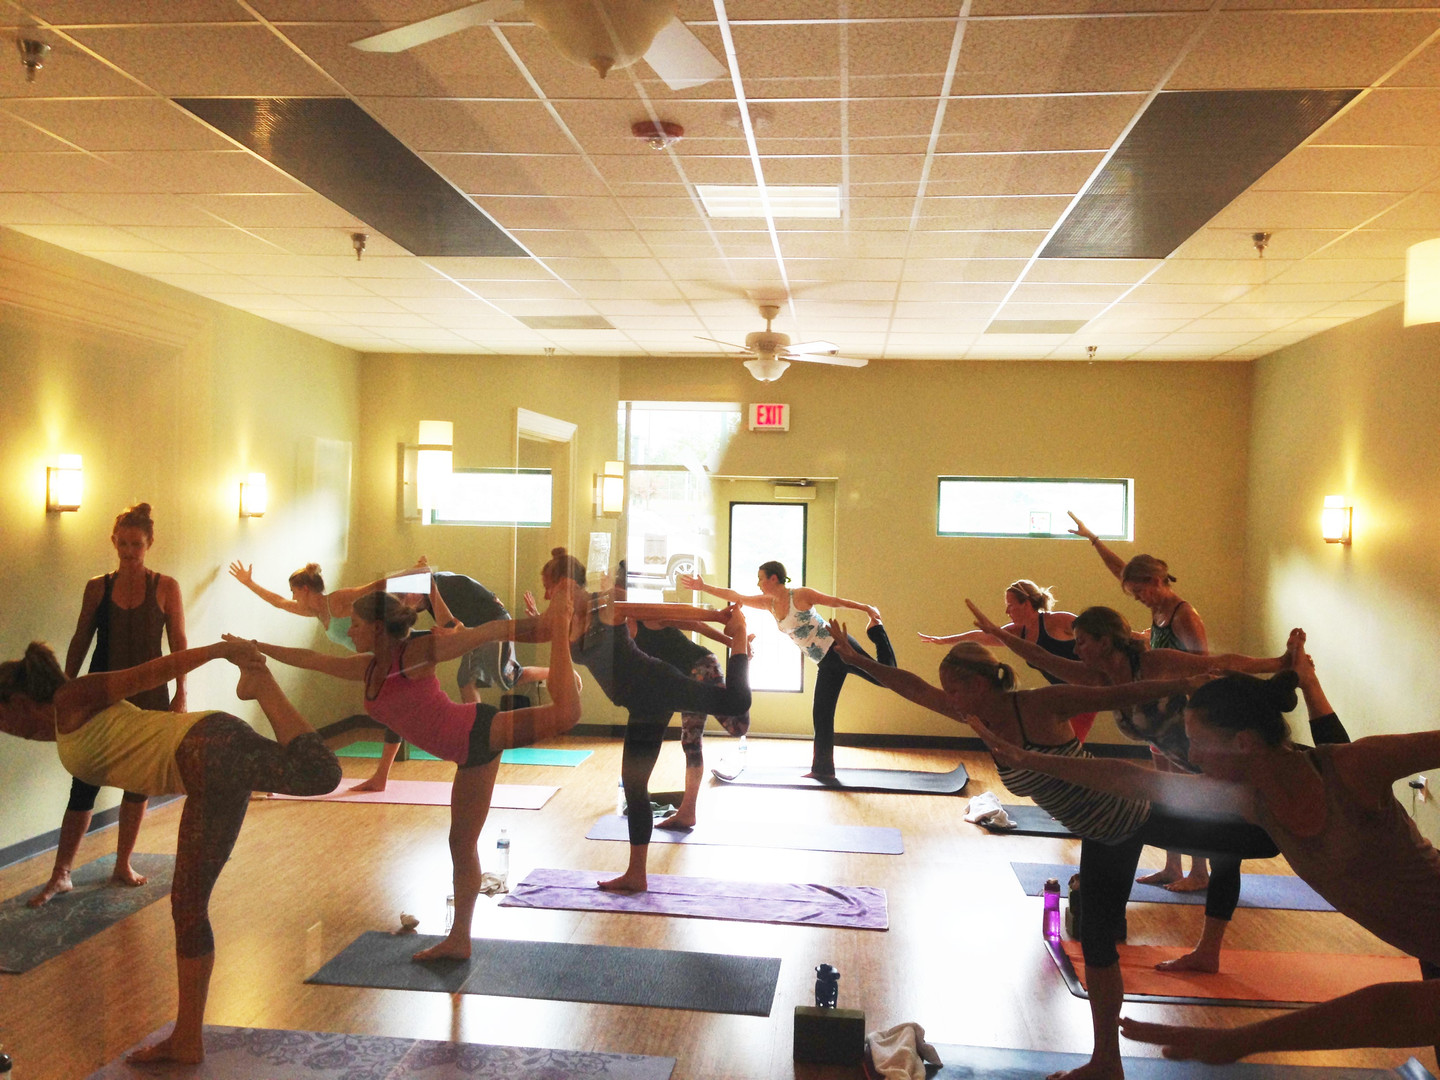 Yoga Flow Class - Dancers Pose